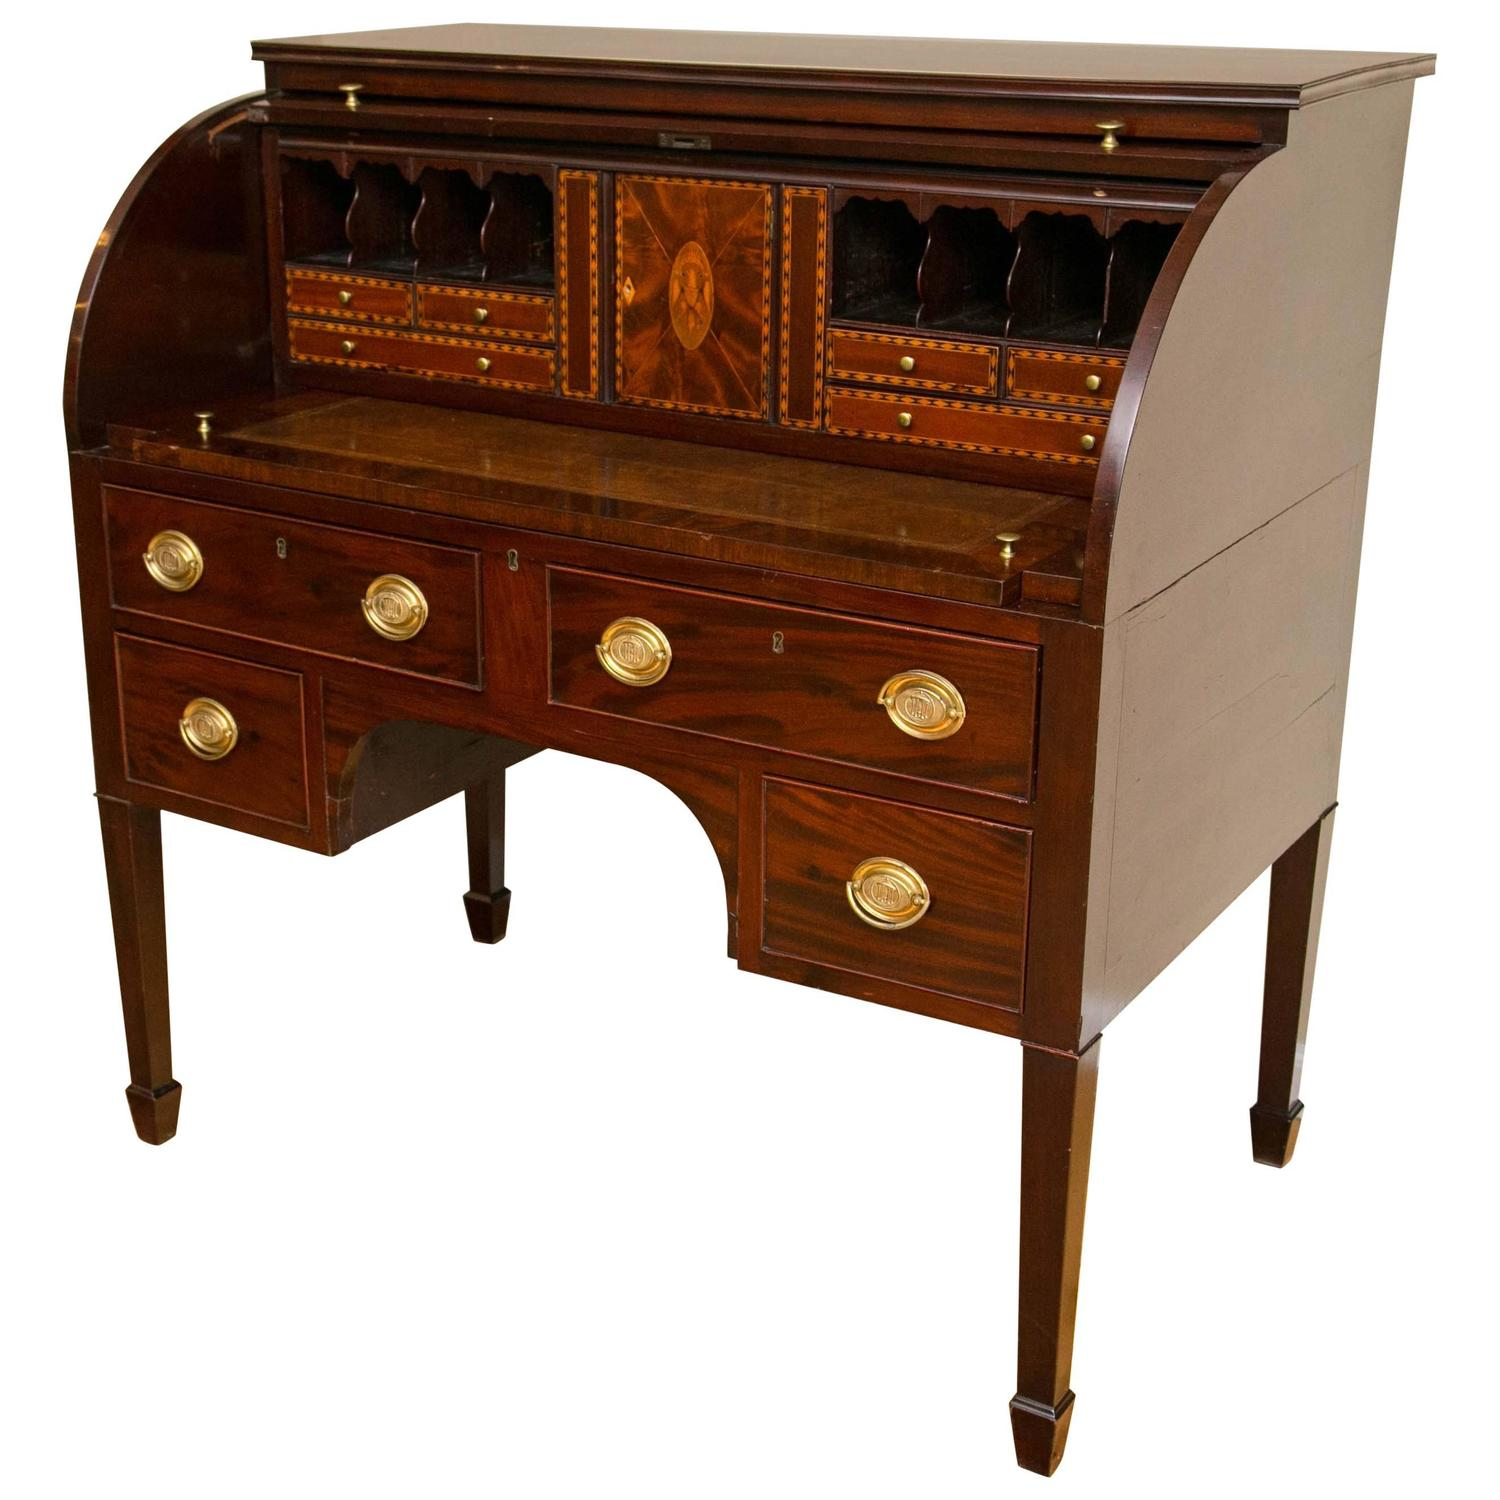 Furniture With Secret Compartments For Sale 187 Thousands